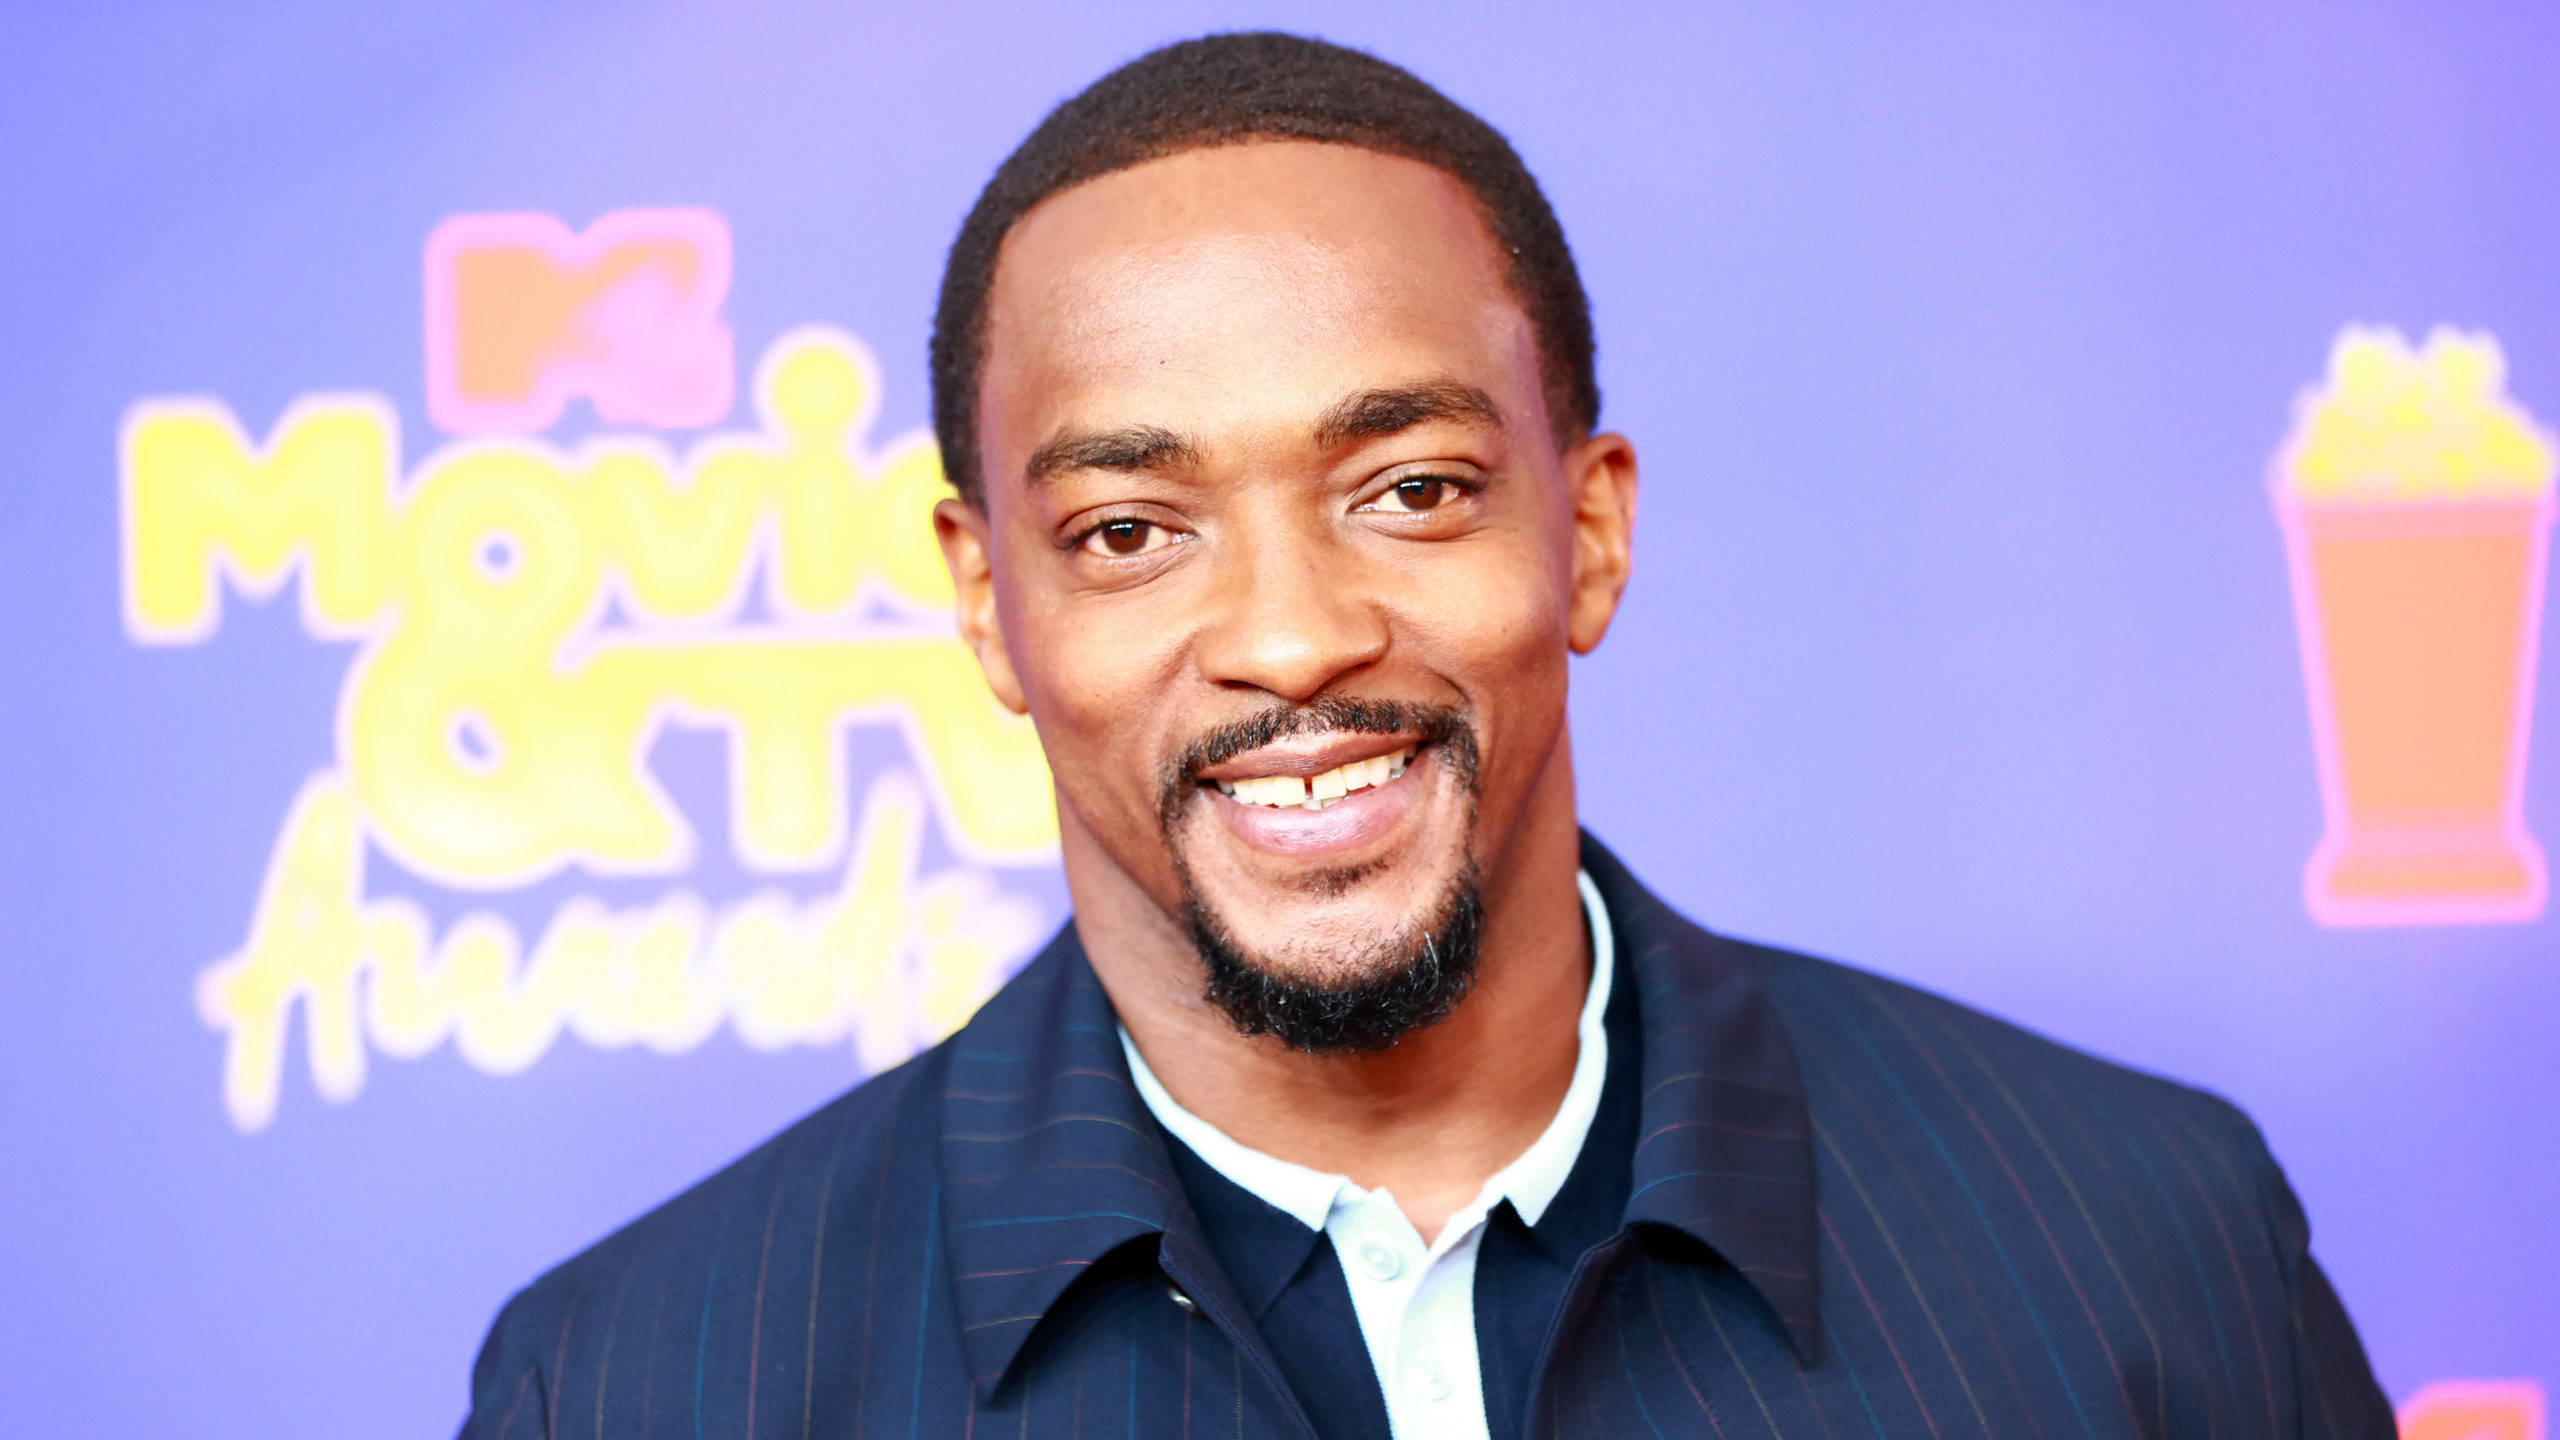 Anthony Mackie in Twisted Metal